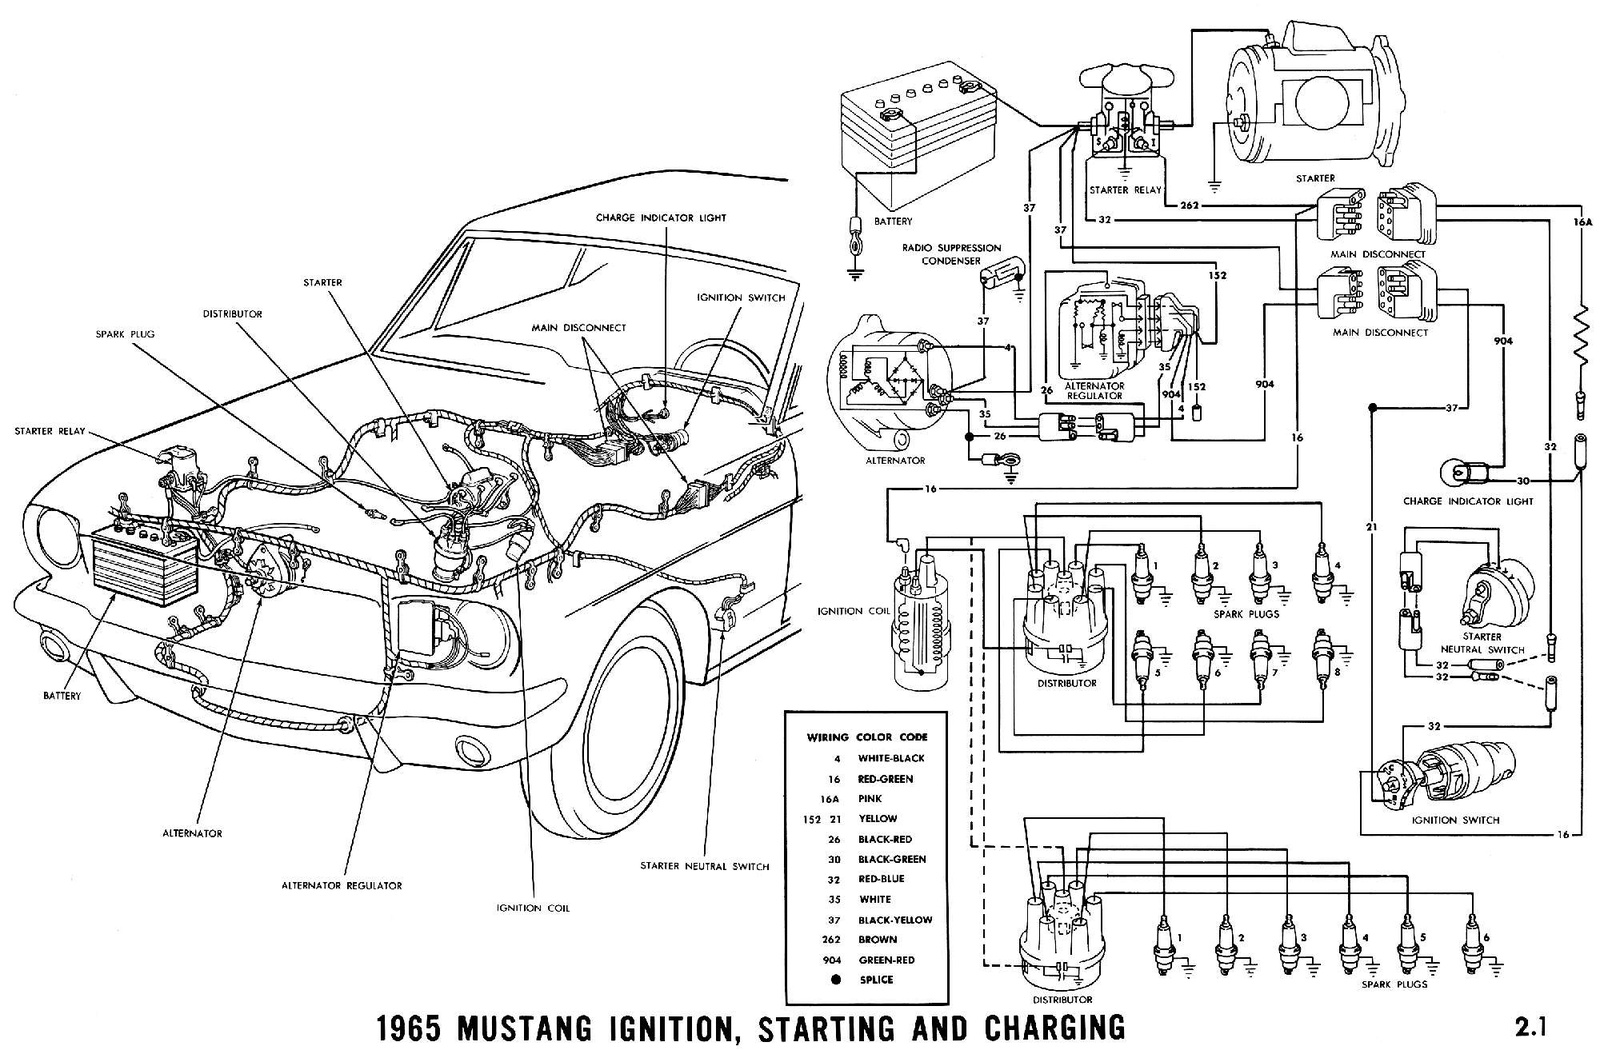 69 mustang wiring harness diagram 9 19 tridonicsignage de \u2022mustang engine wiring harness tab organisedmum de u2022 rh tab organisedmum de 1969 mustang engine compartment wire diagram 1969 mustang wiring diagram